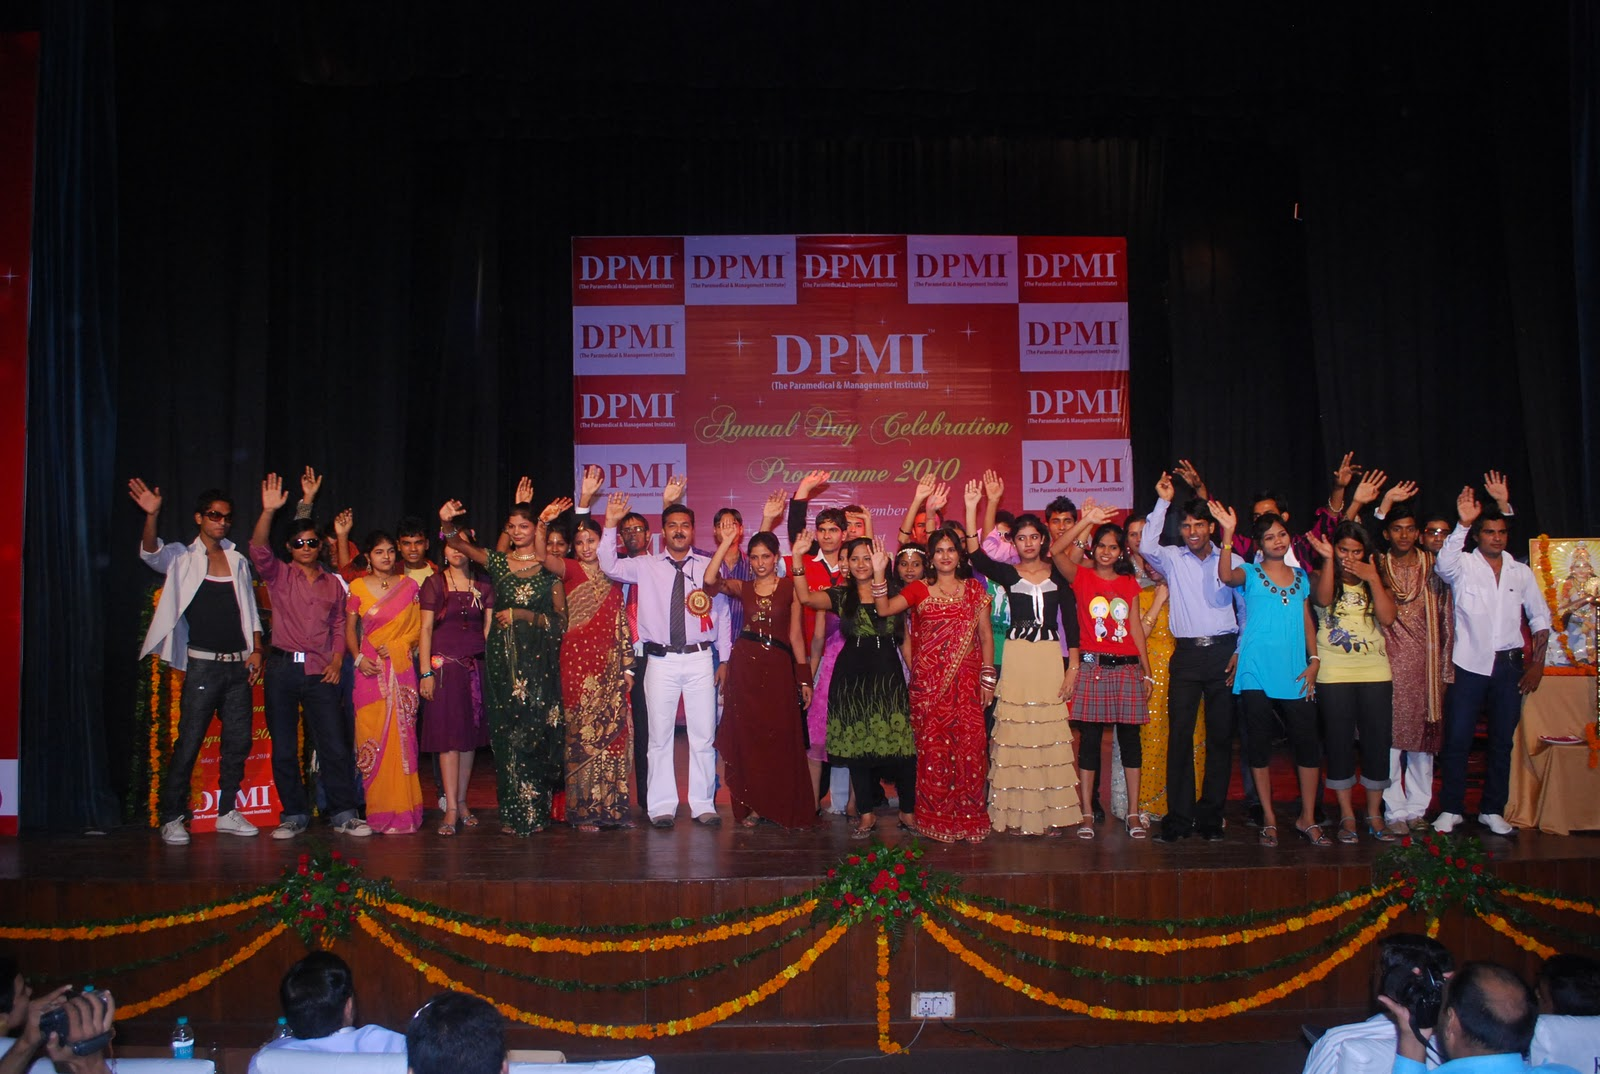 Dpmi http://abbaskro.blogspot.com/2010/11/blog-post_07.html